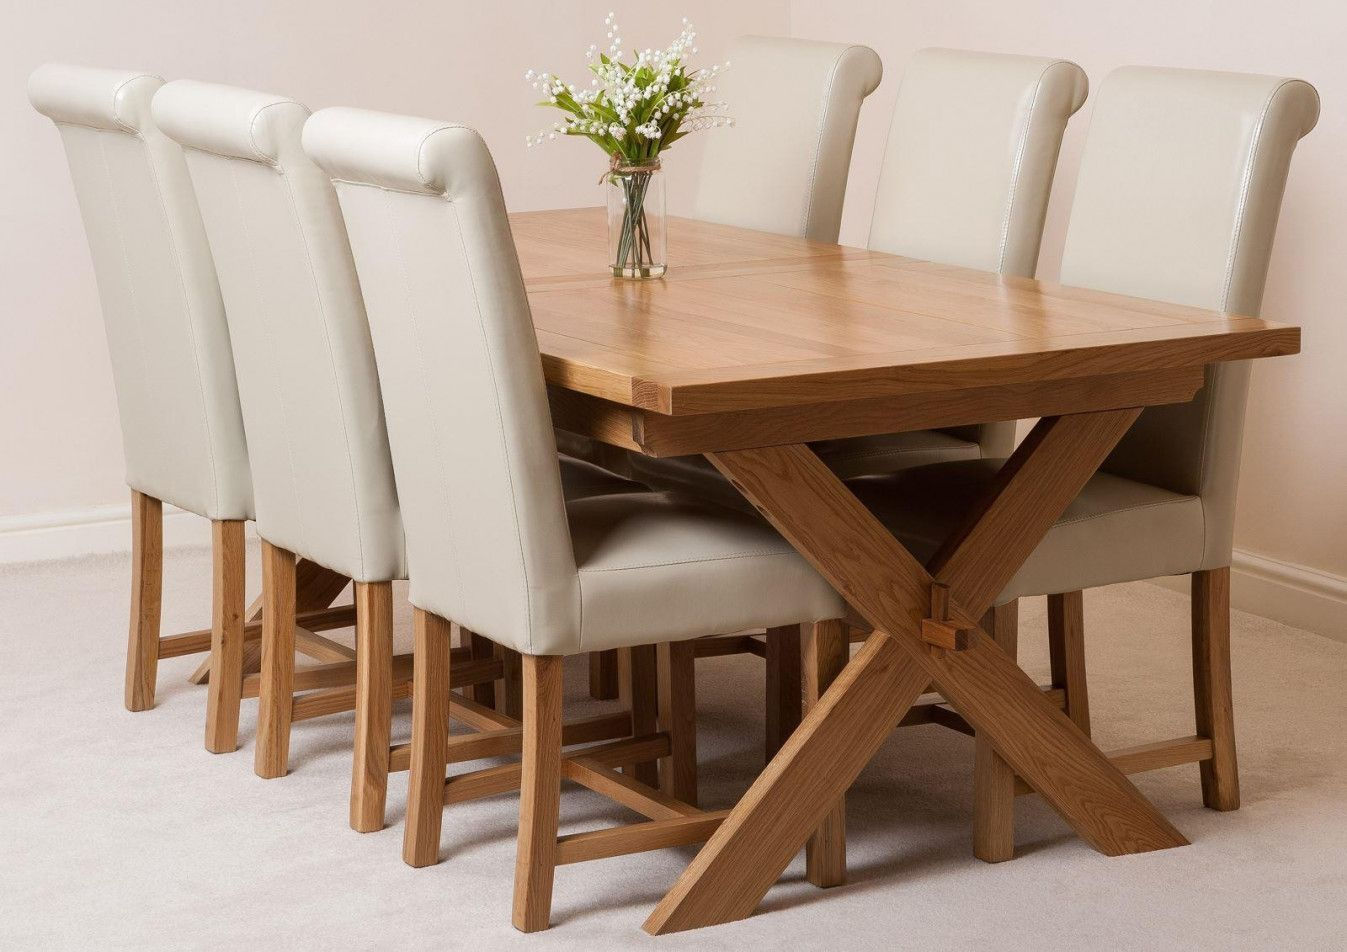 99 Oak Dining Table And Chairs For Sale Modern Classic